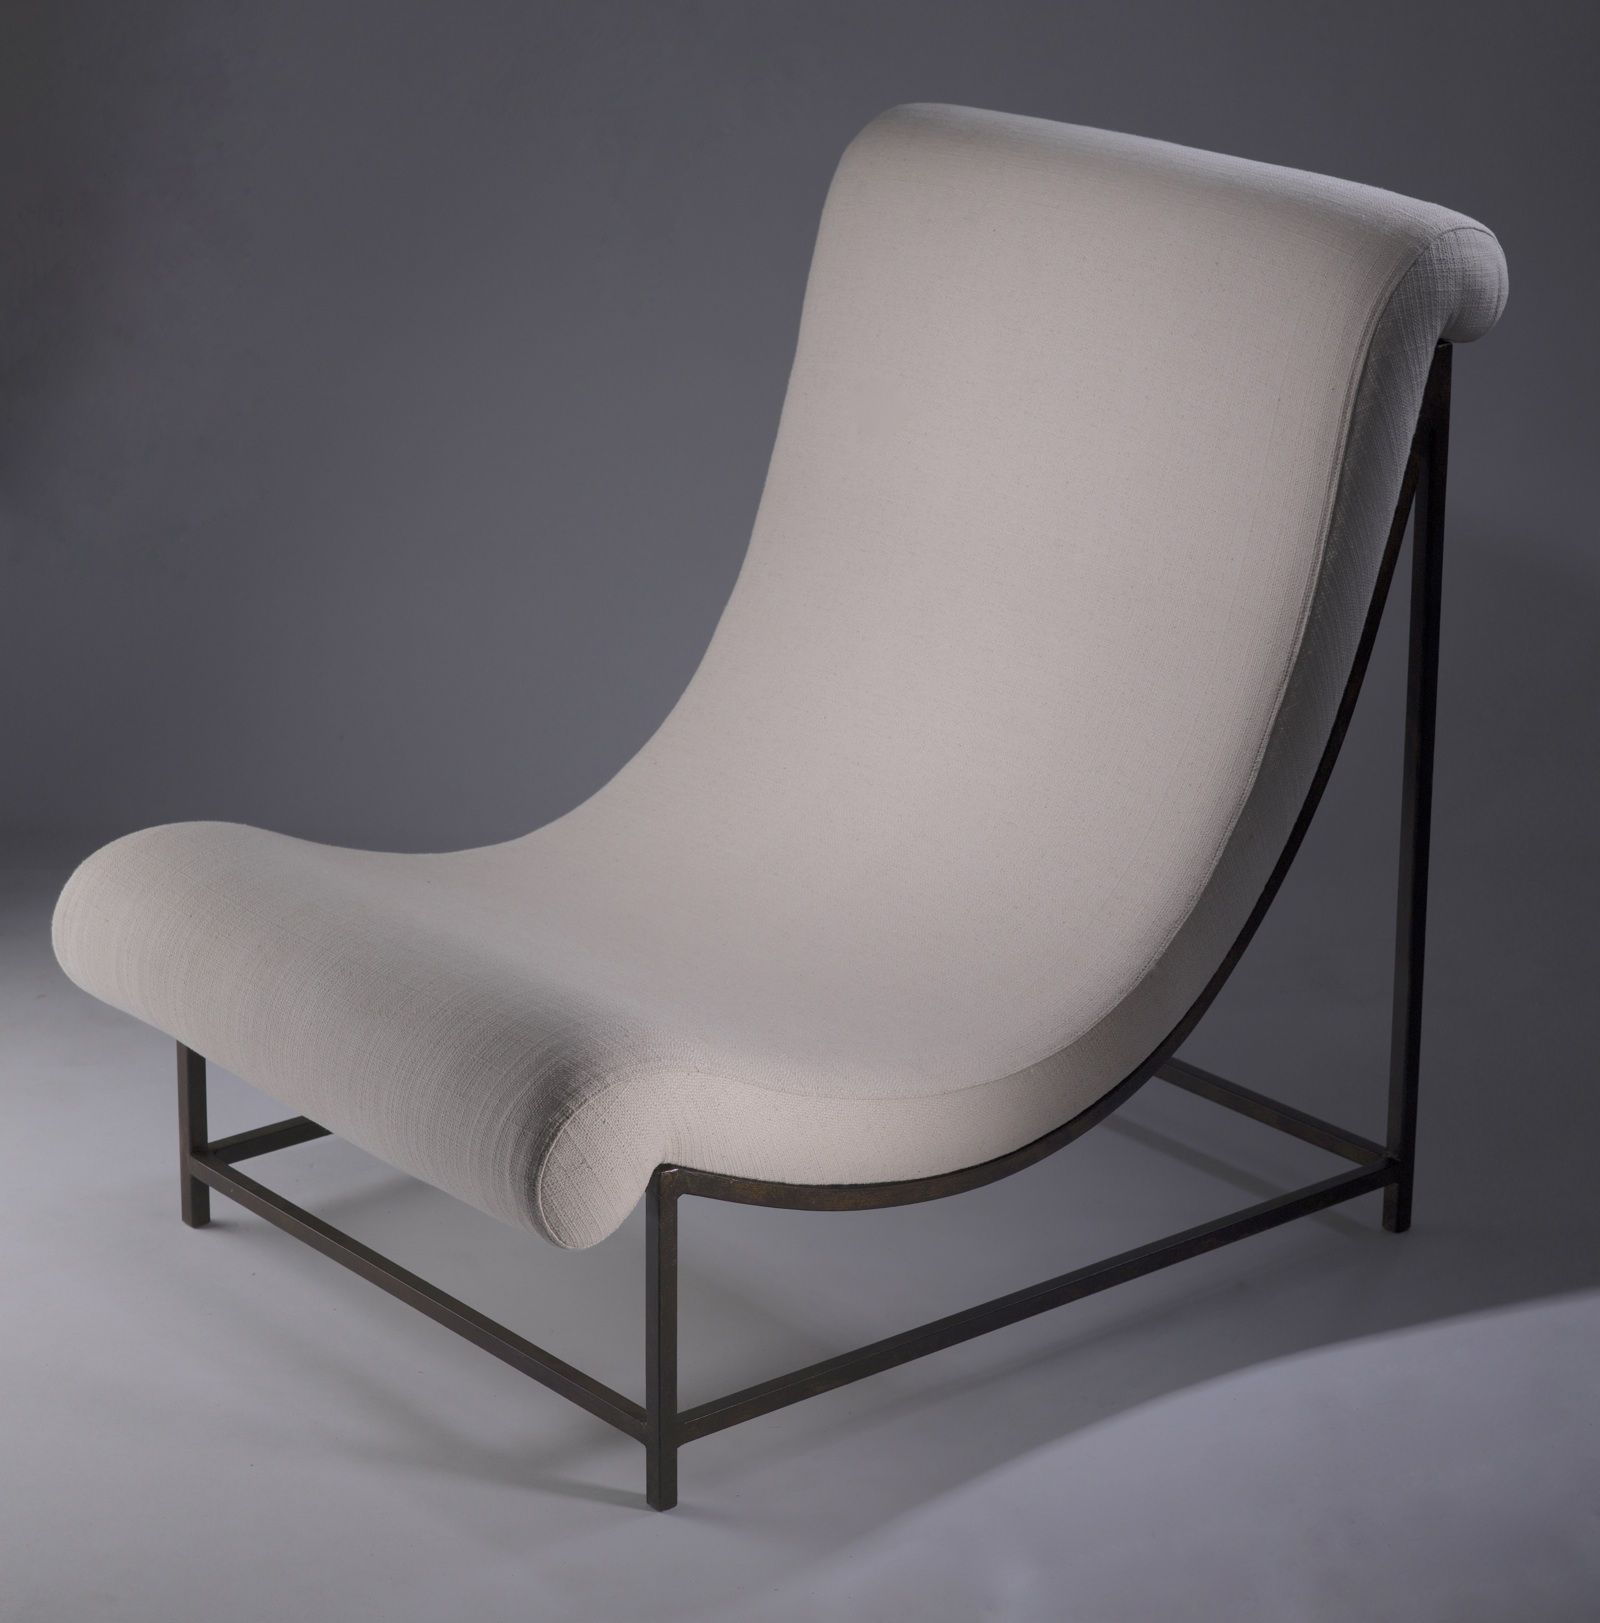 wrought iron 'elen' chair in brown bronze finish with cream linen upholstery